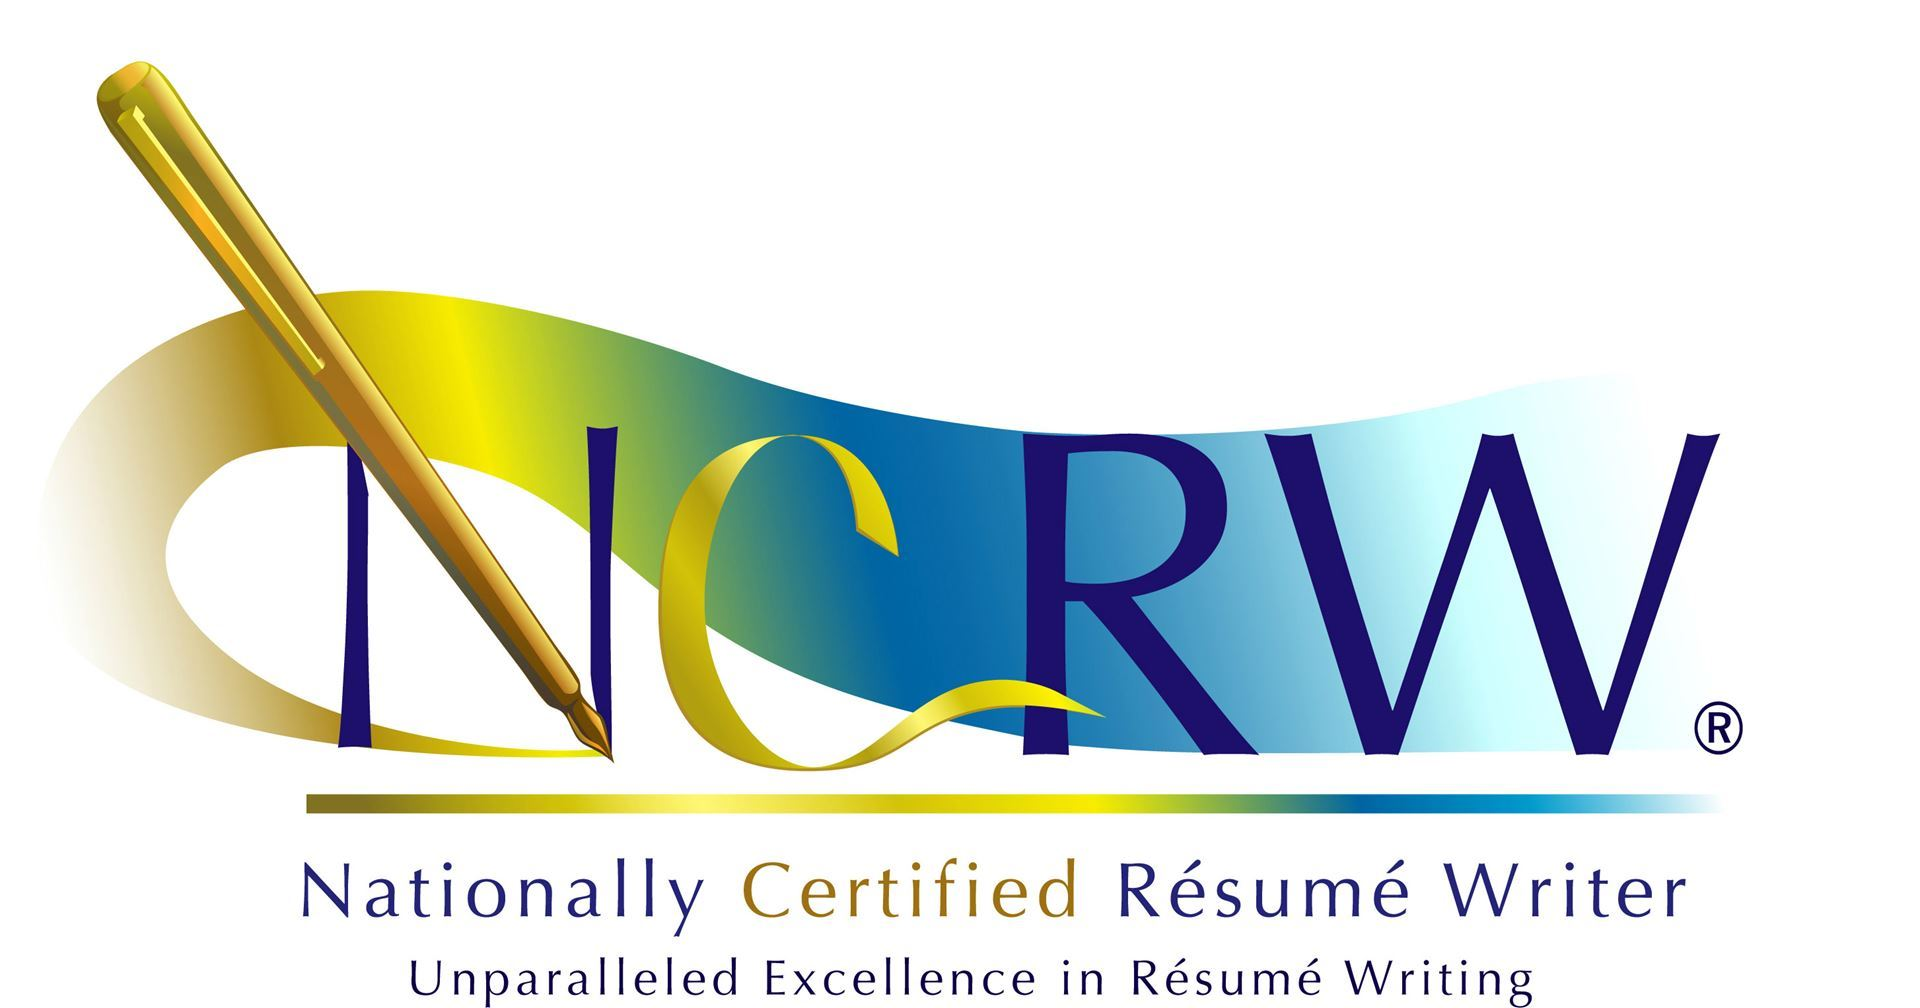 resume Resume Services the national writers association find a nationally certified resume must first prove their seniority in and commitment to writing industry by p